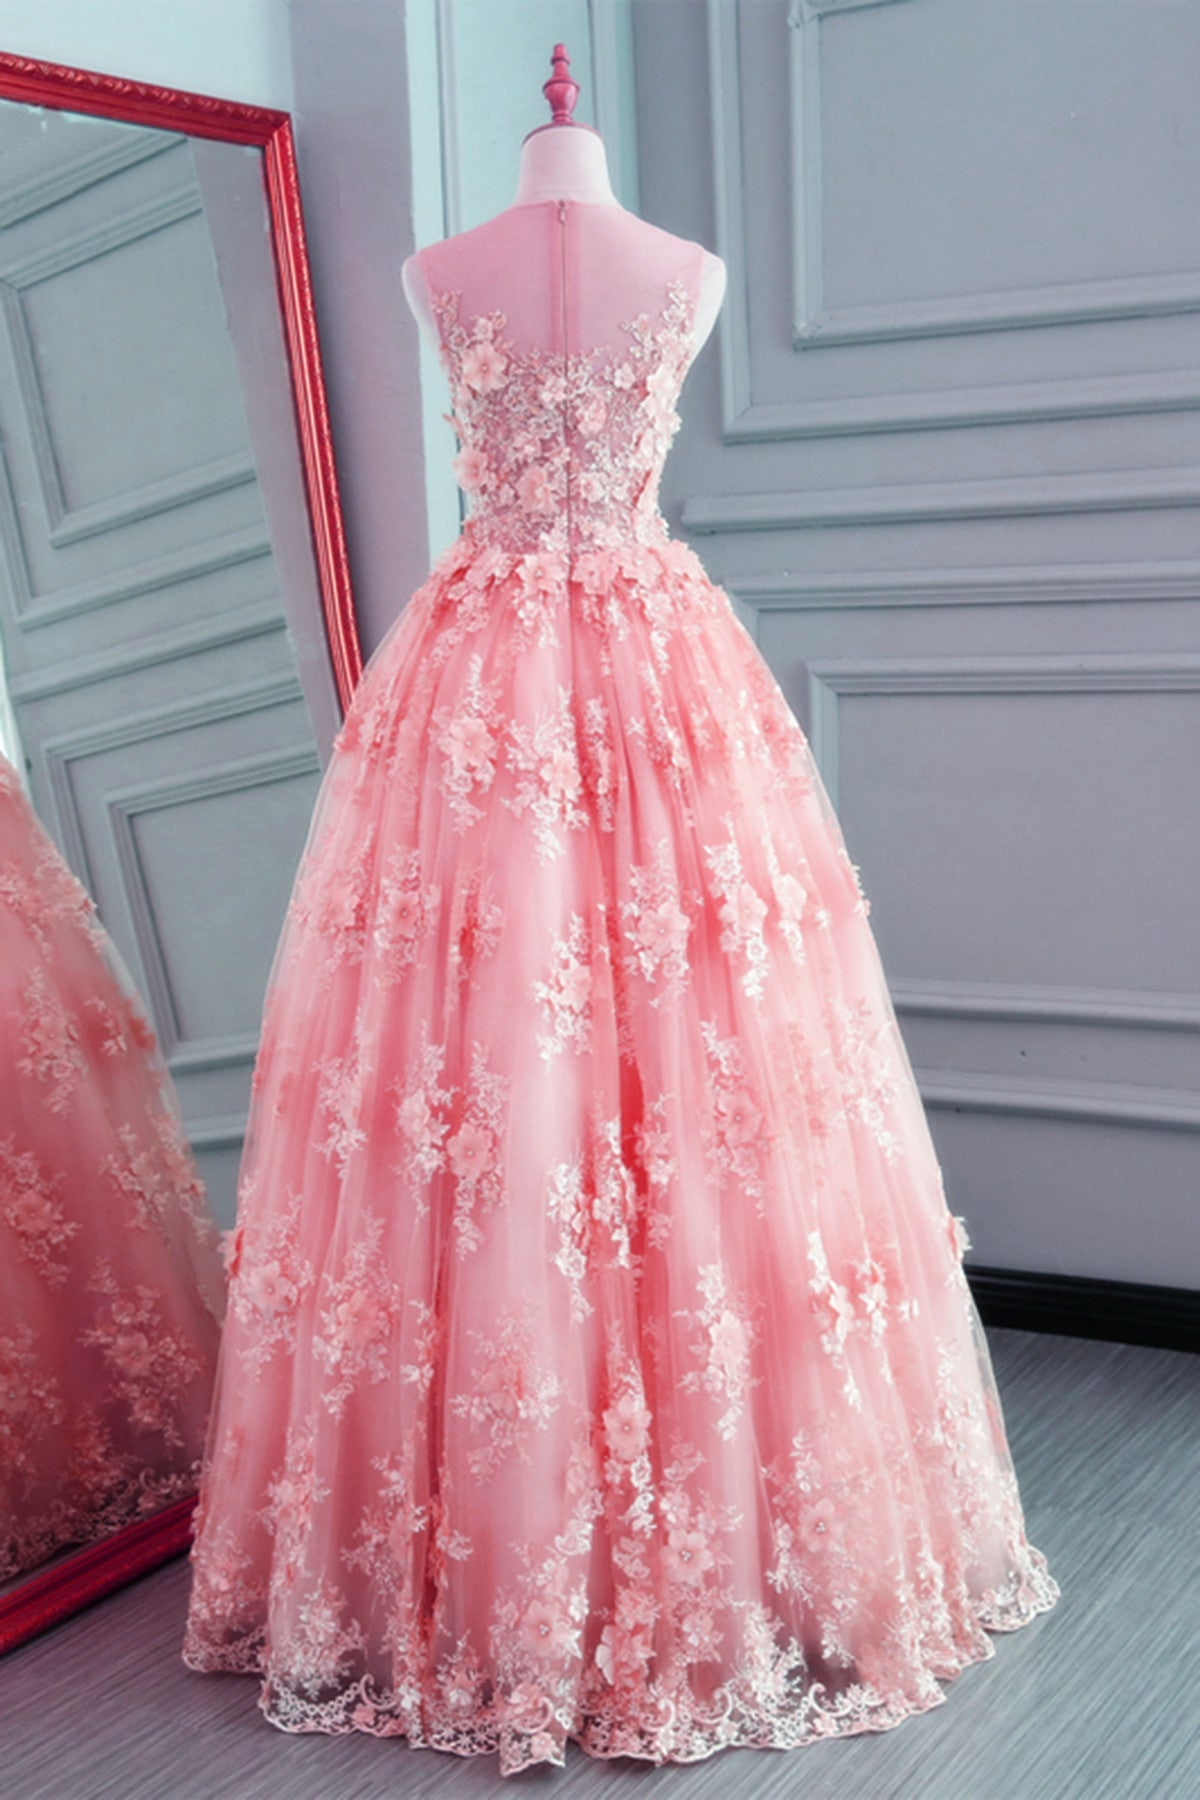 Pink Lace Organza Tulle Round Neckline Long Party Dress, Junior Prom Dress